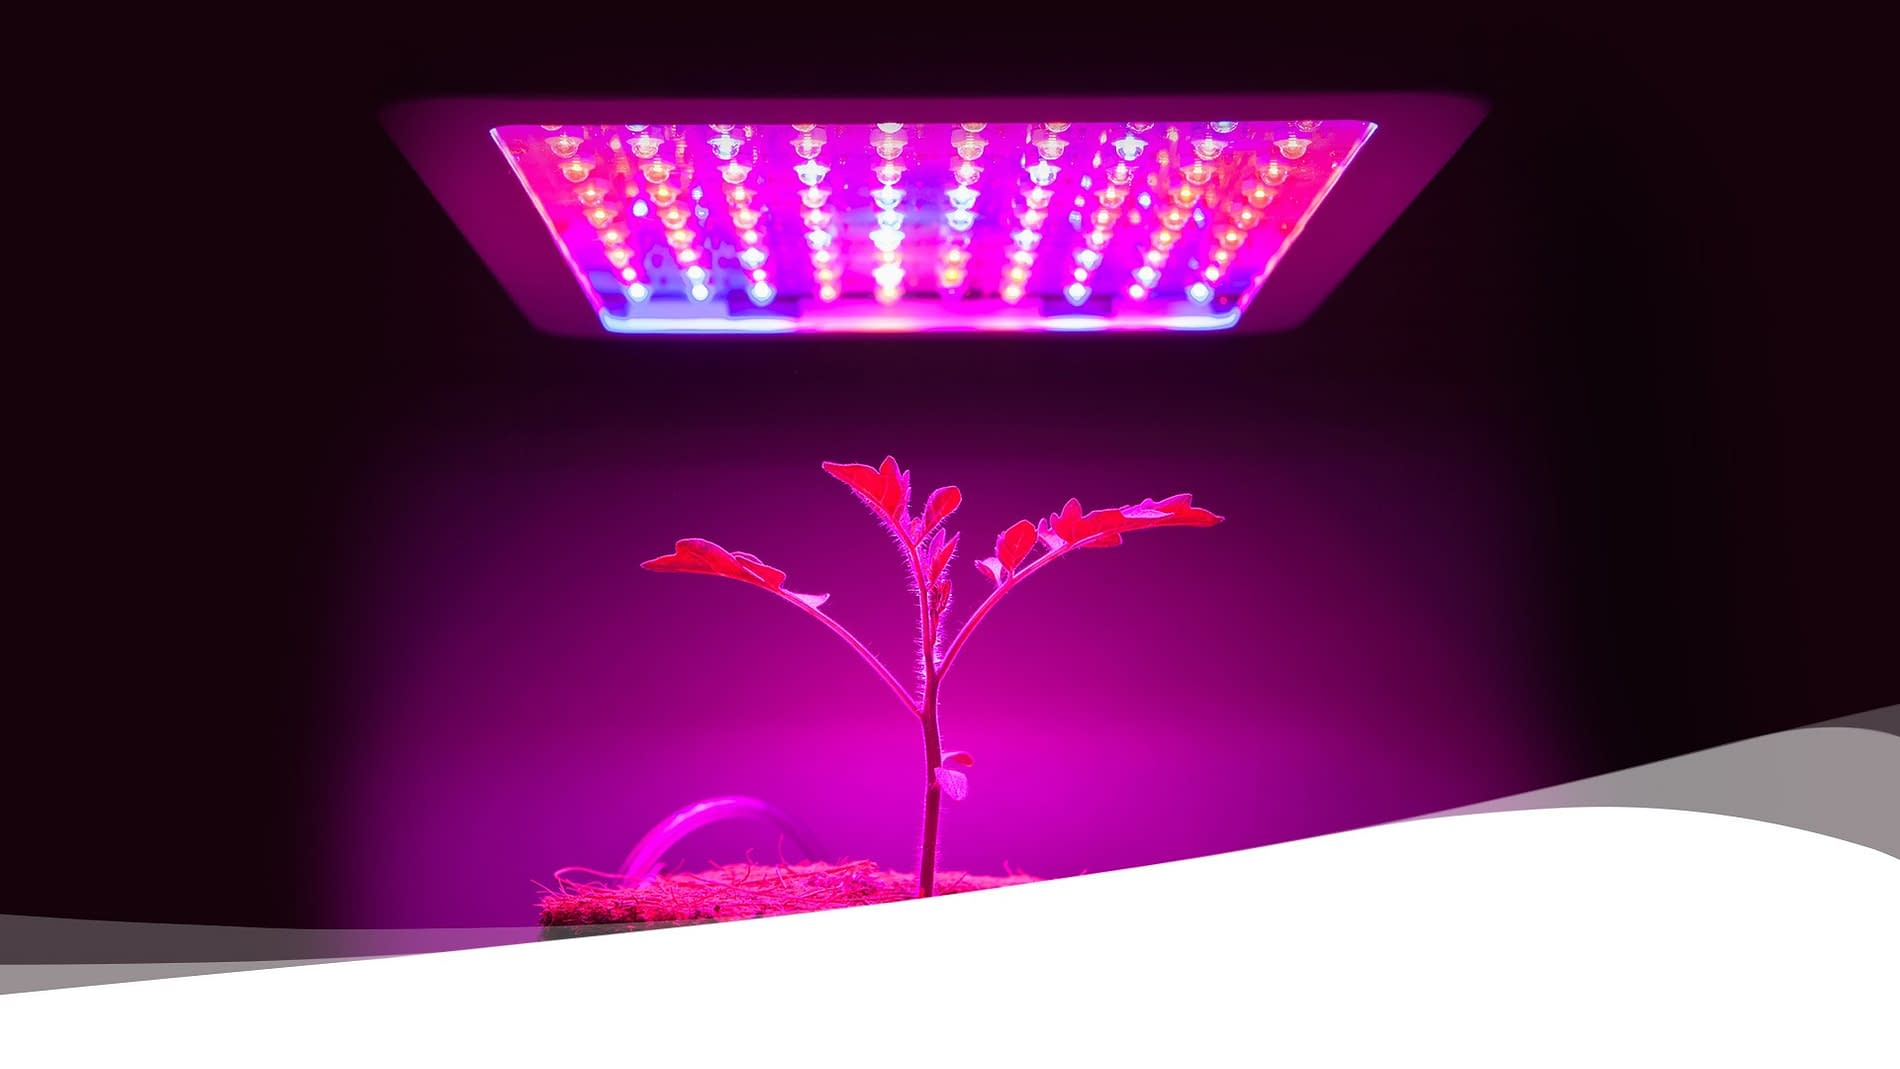 Dr. Muller light therapy research on growth plants